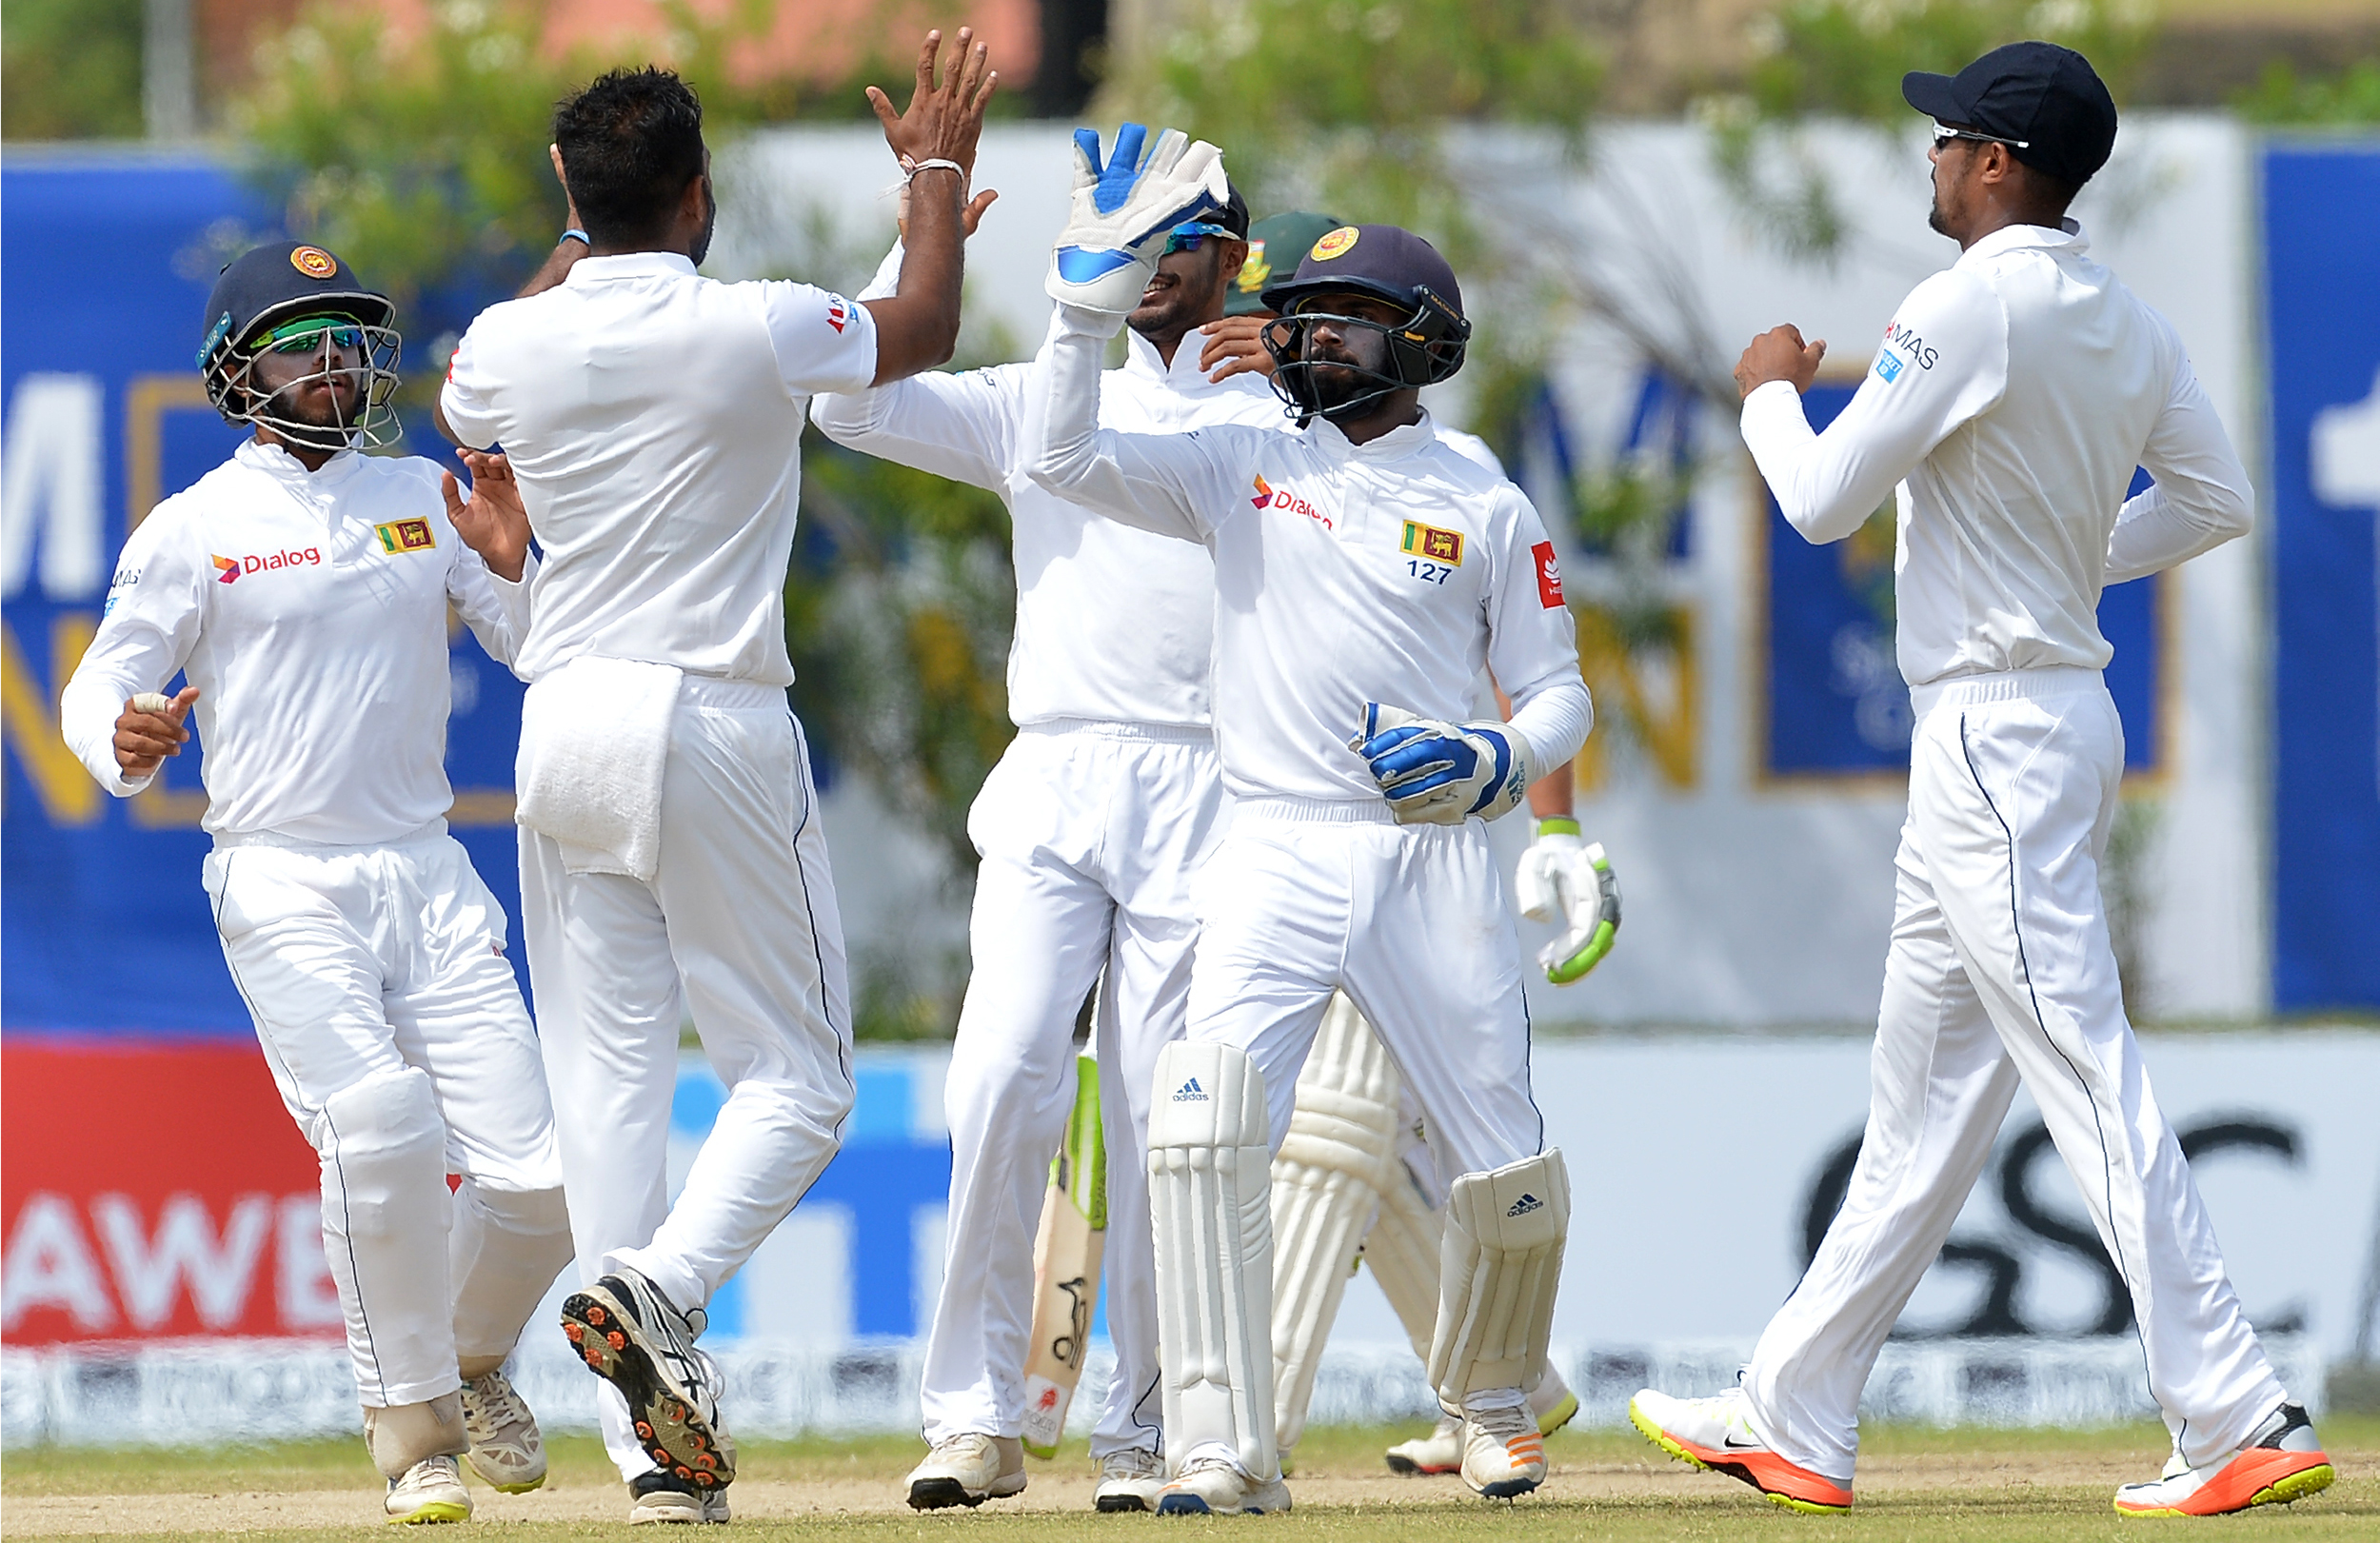 Sri Lanka spinners rout S.Africa in 3 days